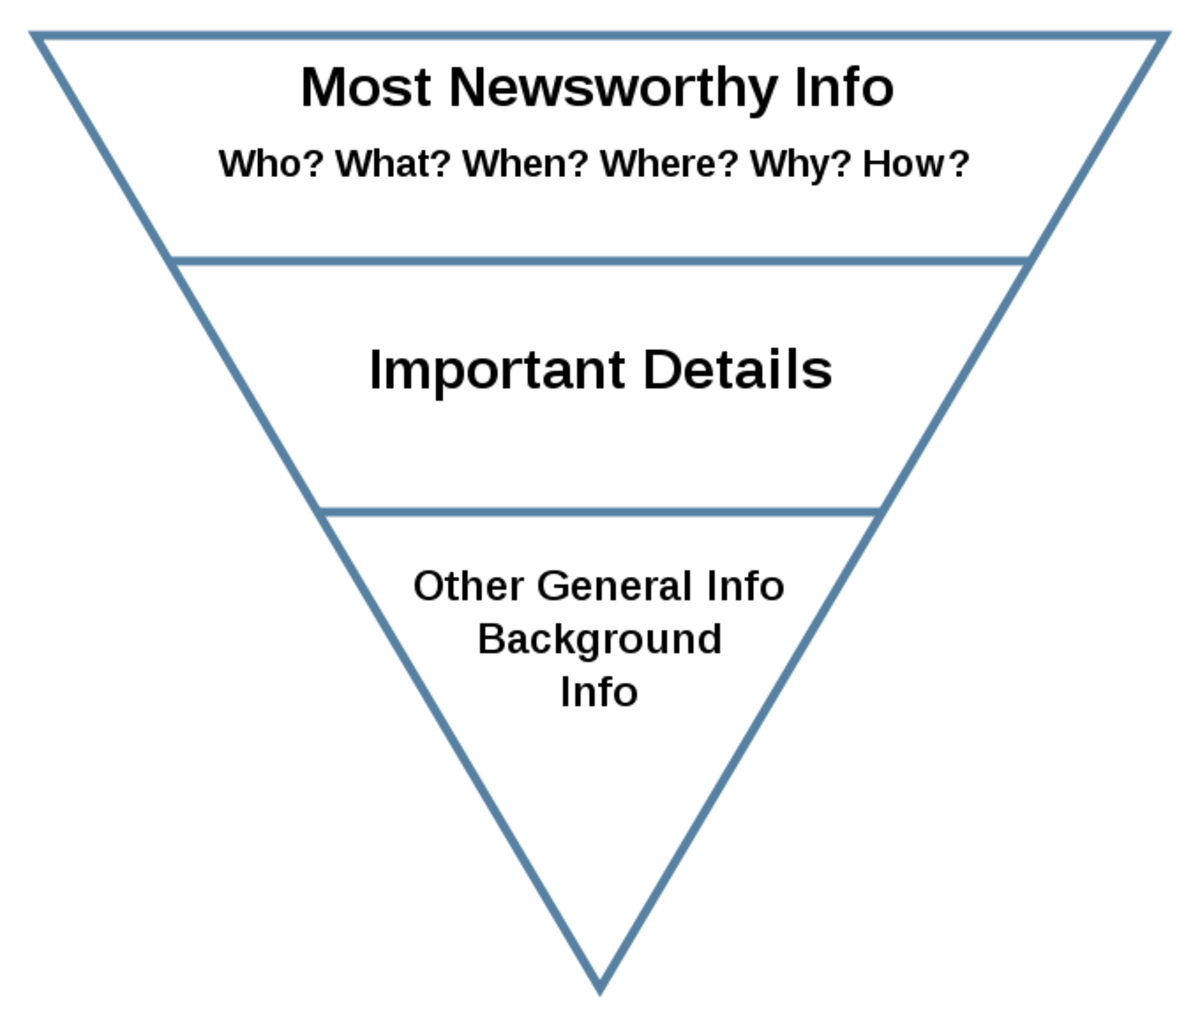 The inverted pyramid model used for newspaper articles